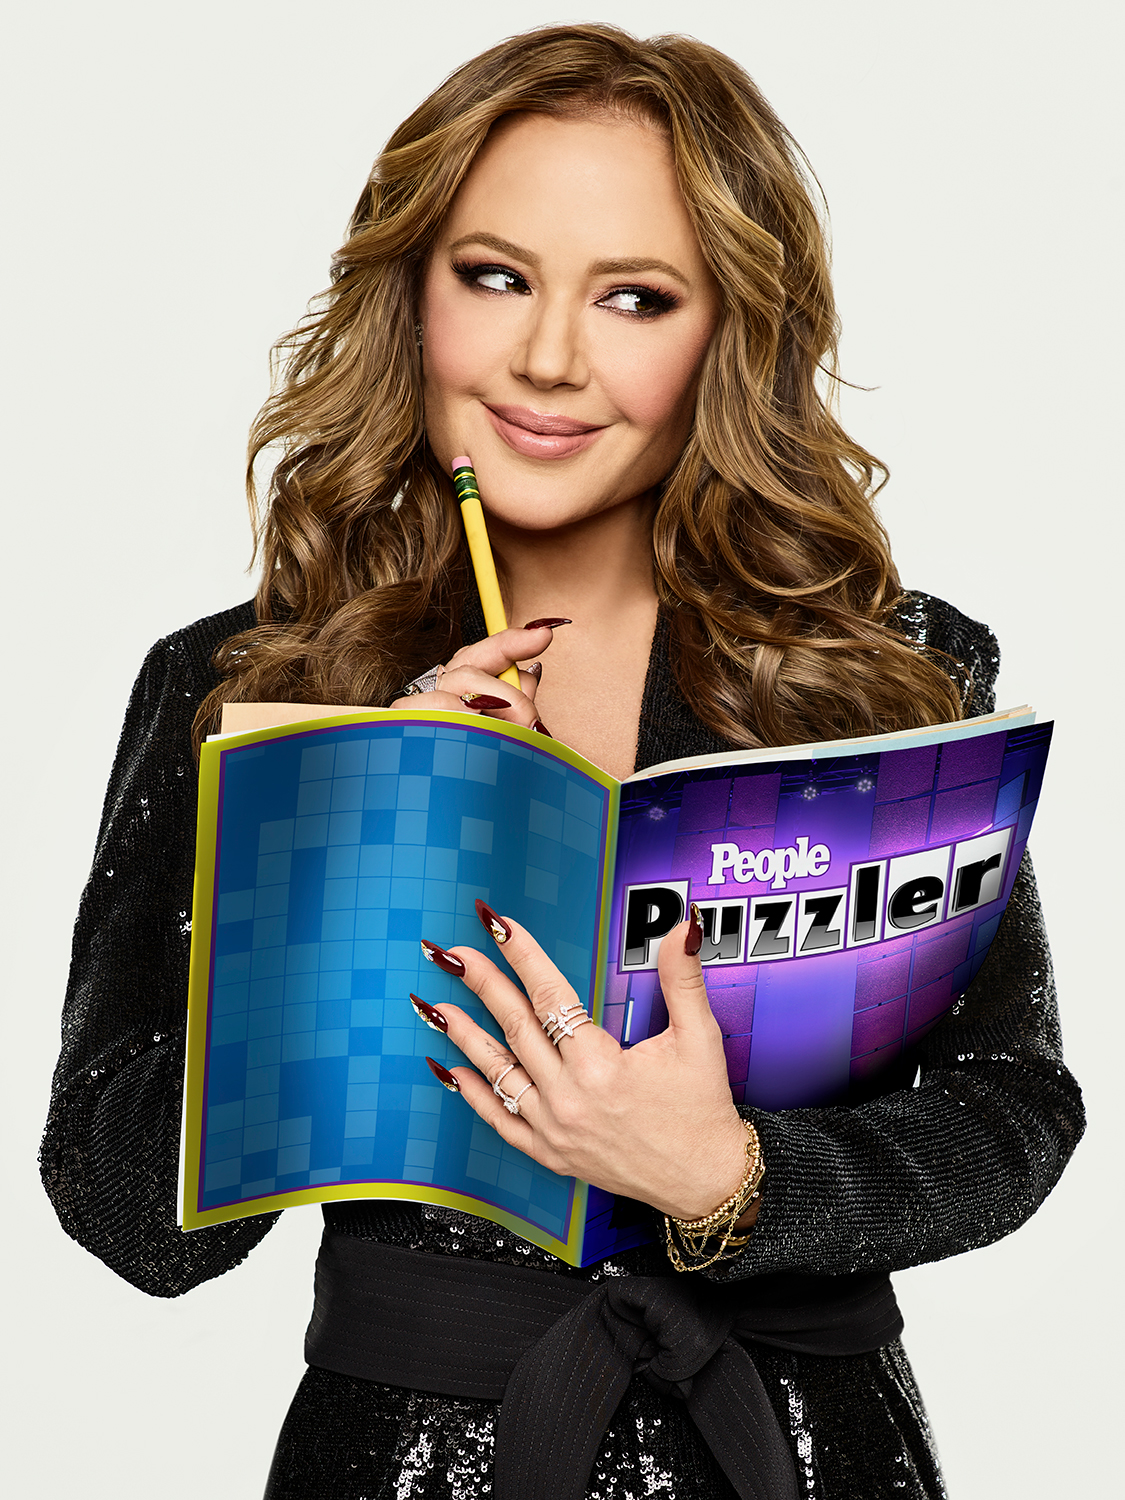 Leah Remini hosts PEOPLE Puzzler